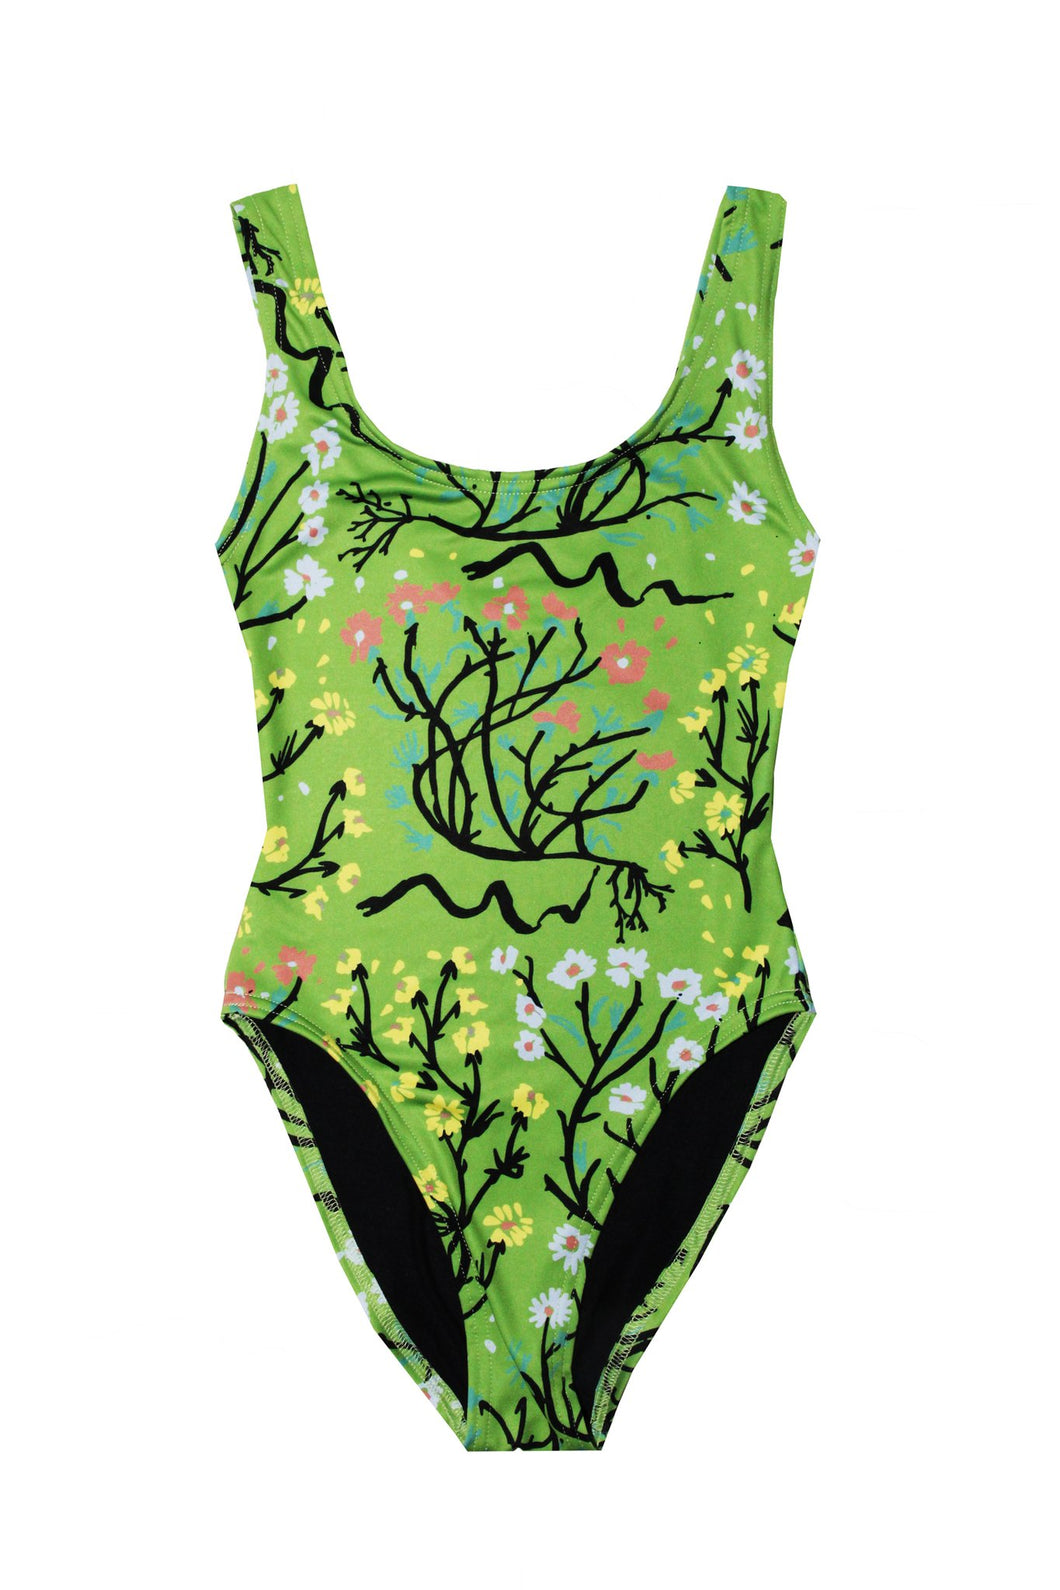 Spring Uprooted Cheeky Swimsuit, S